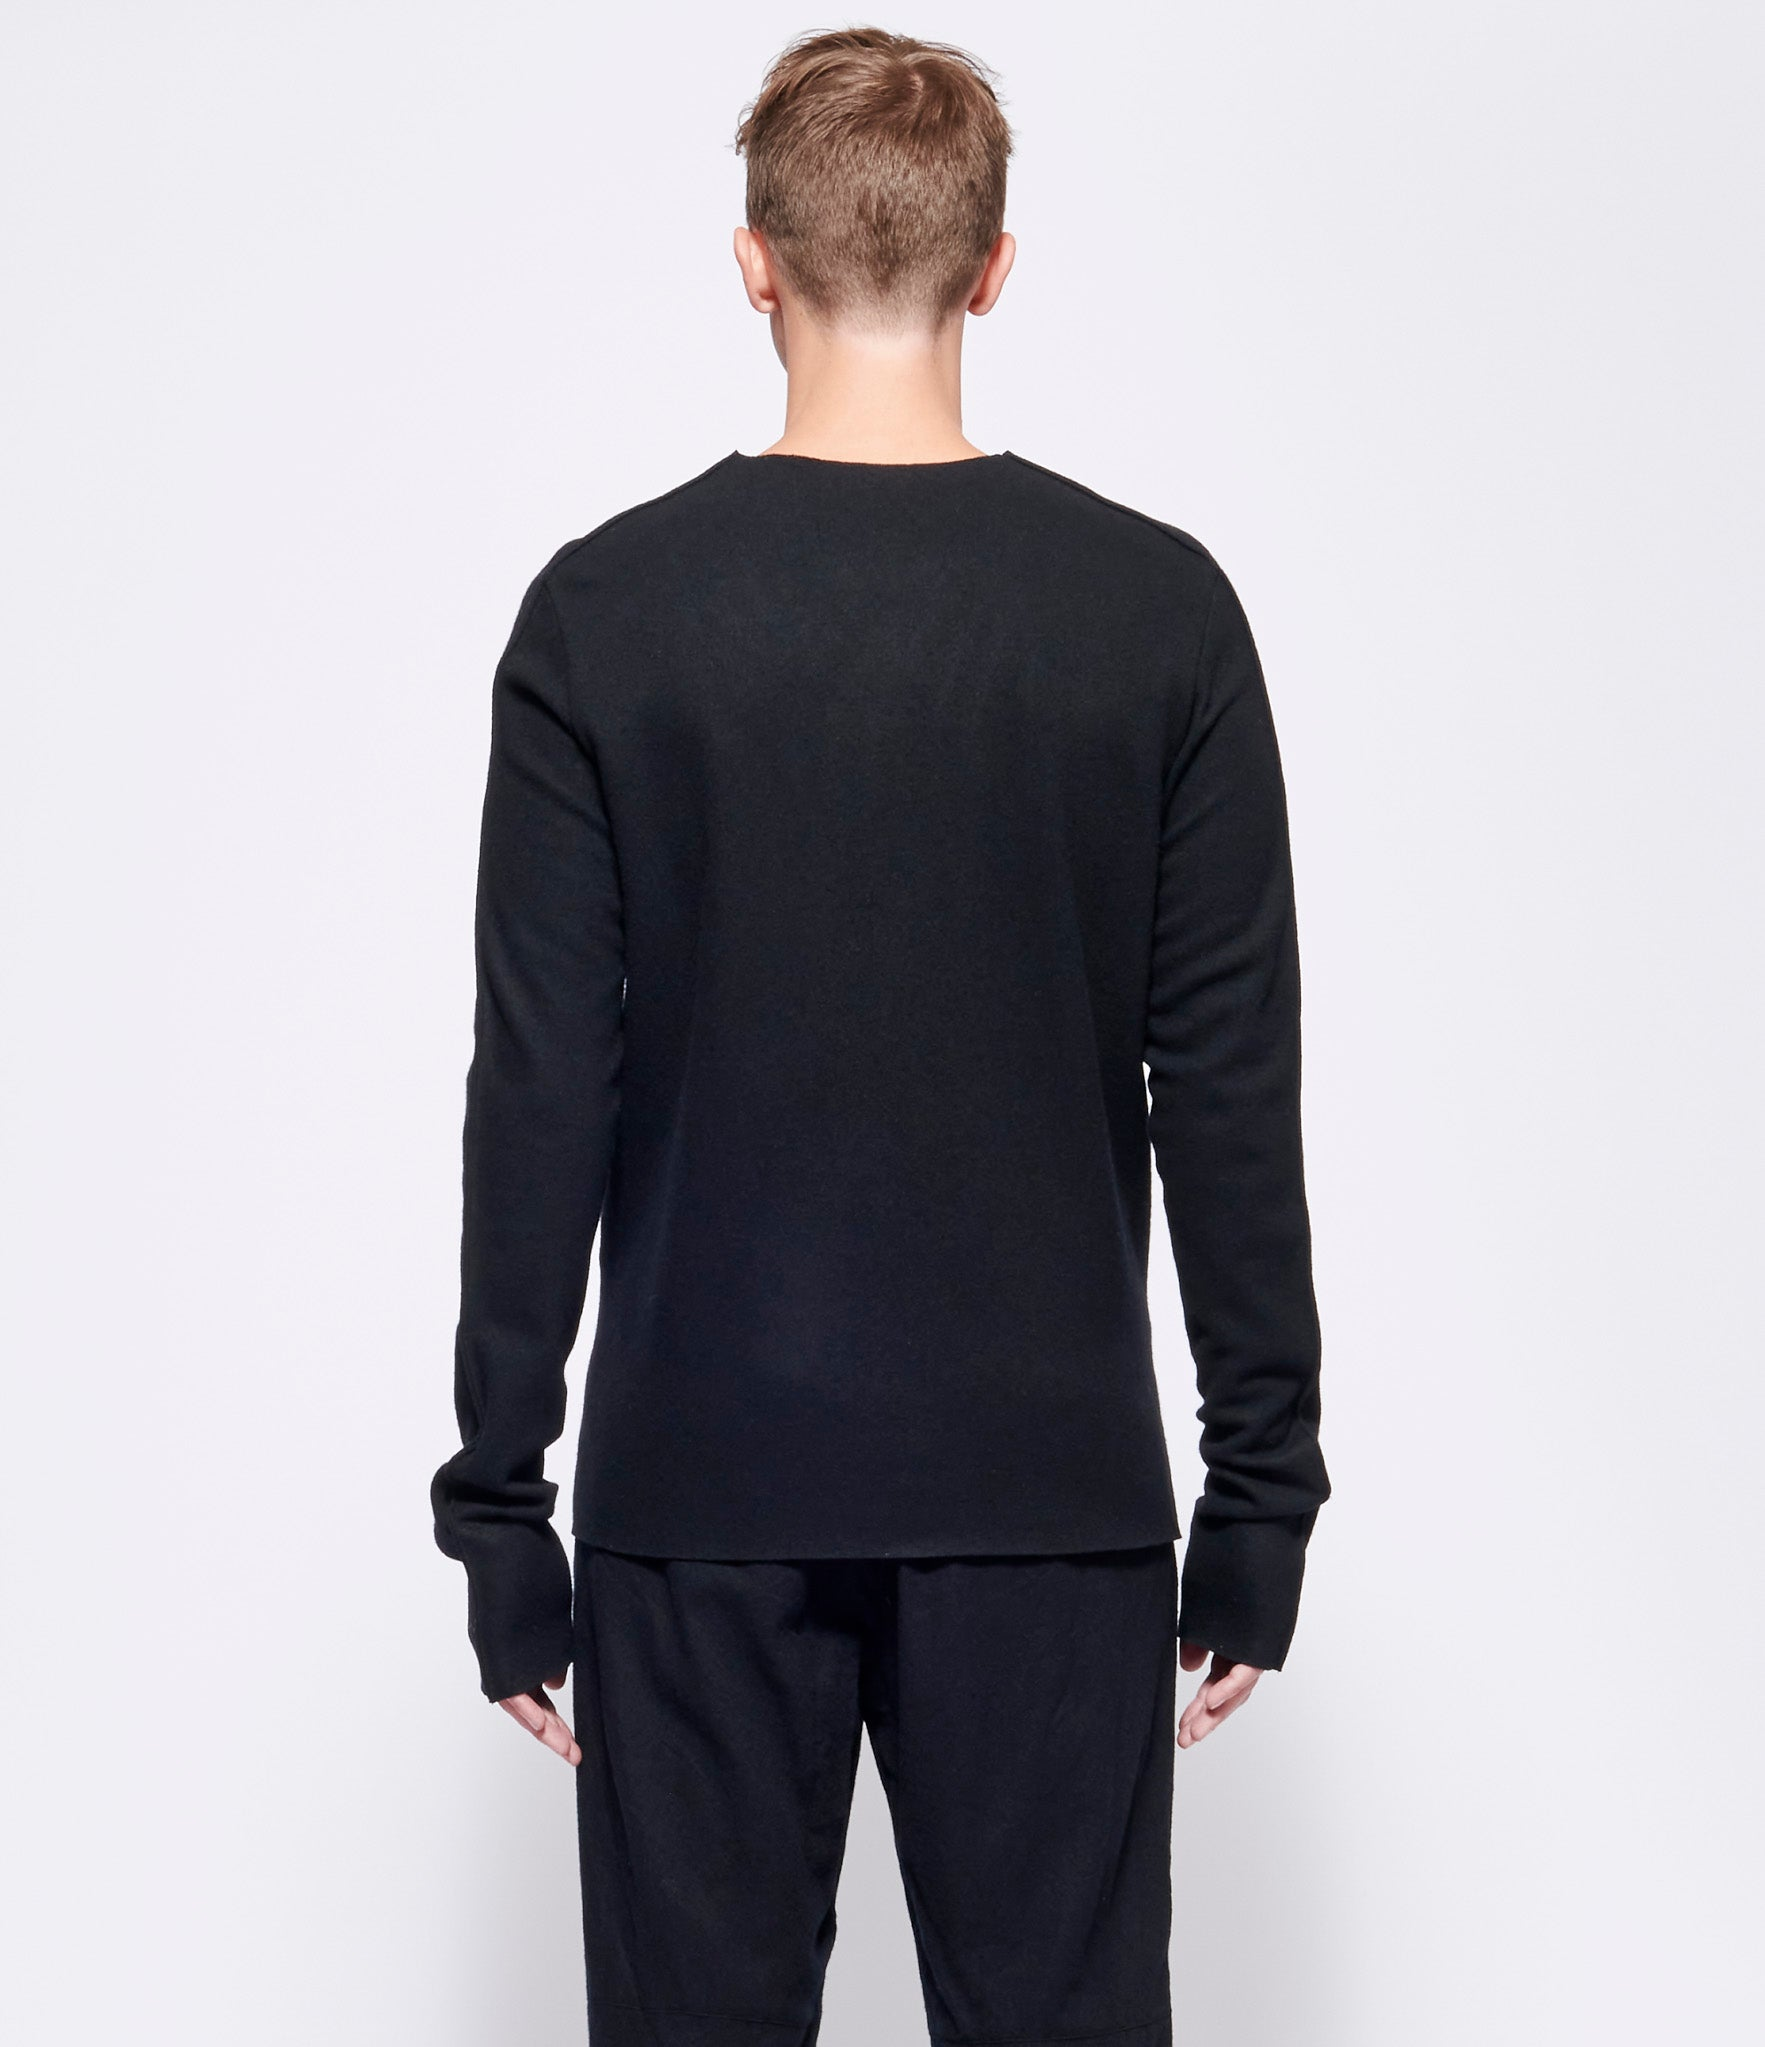 Individual Sentiments Black Wool Cashmere Long Sleeve Top